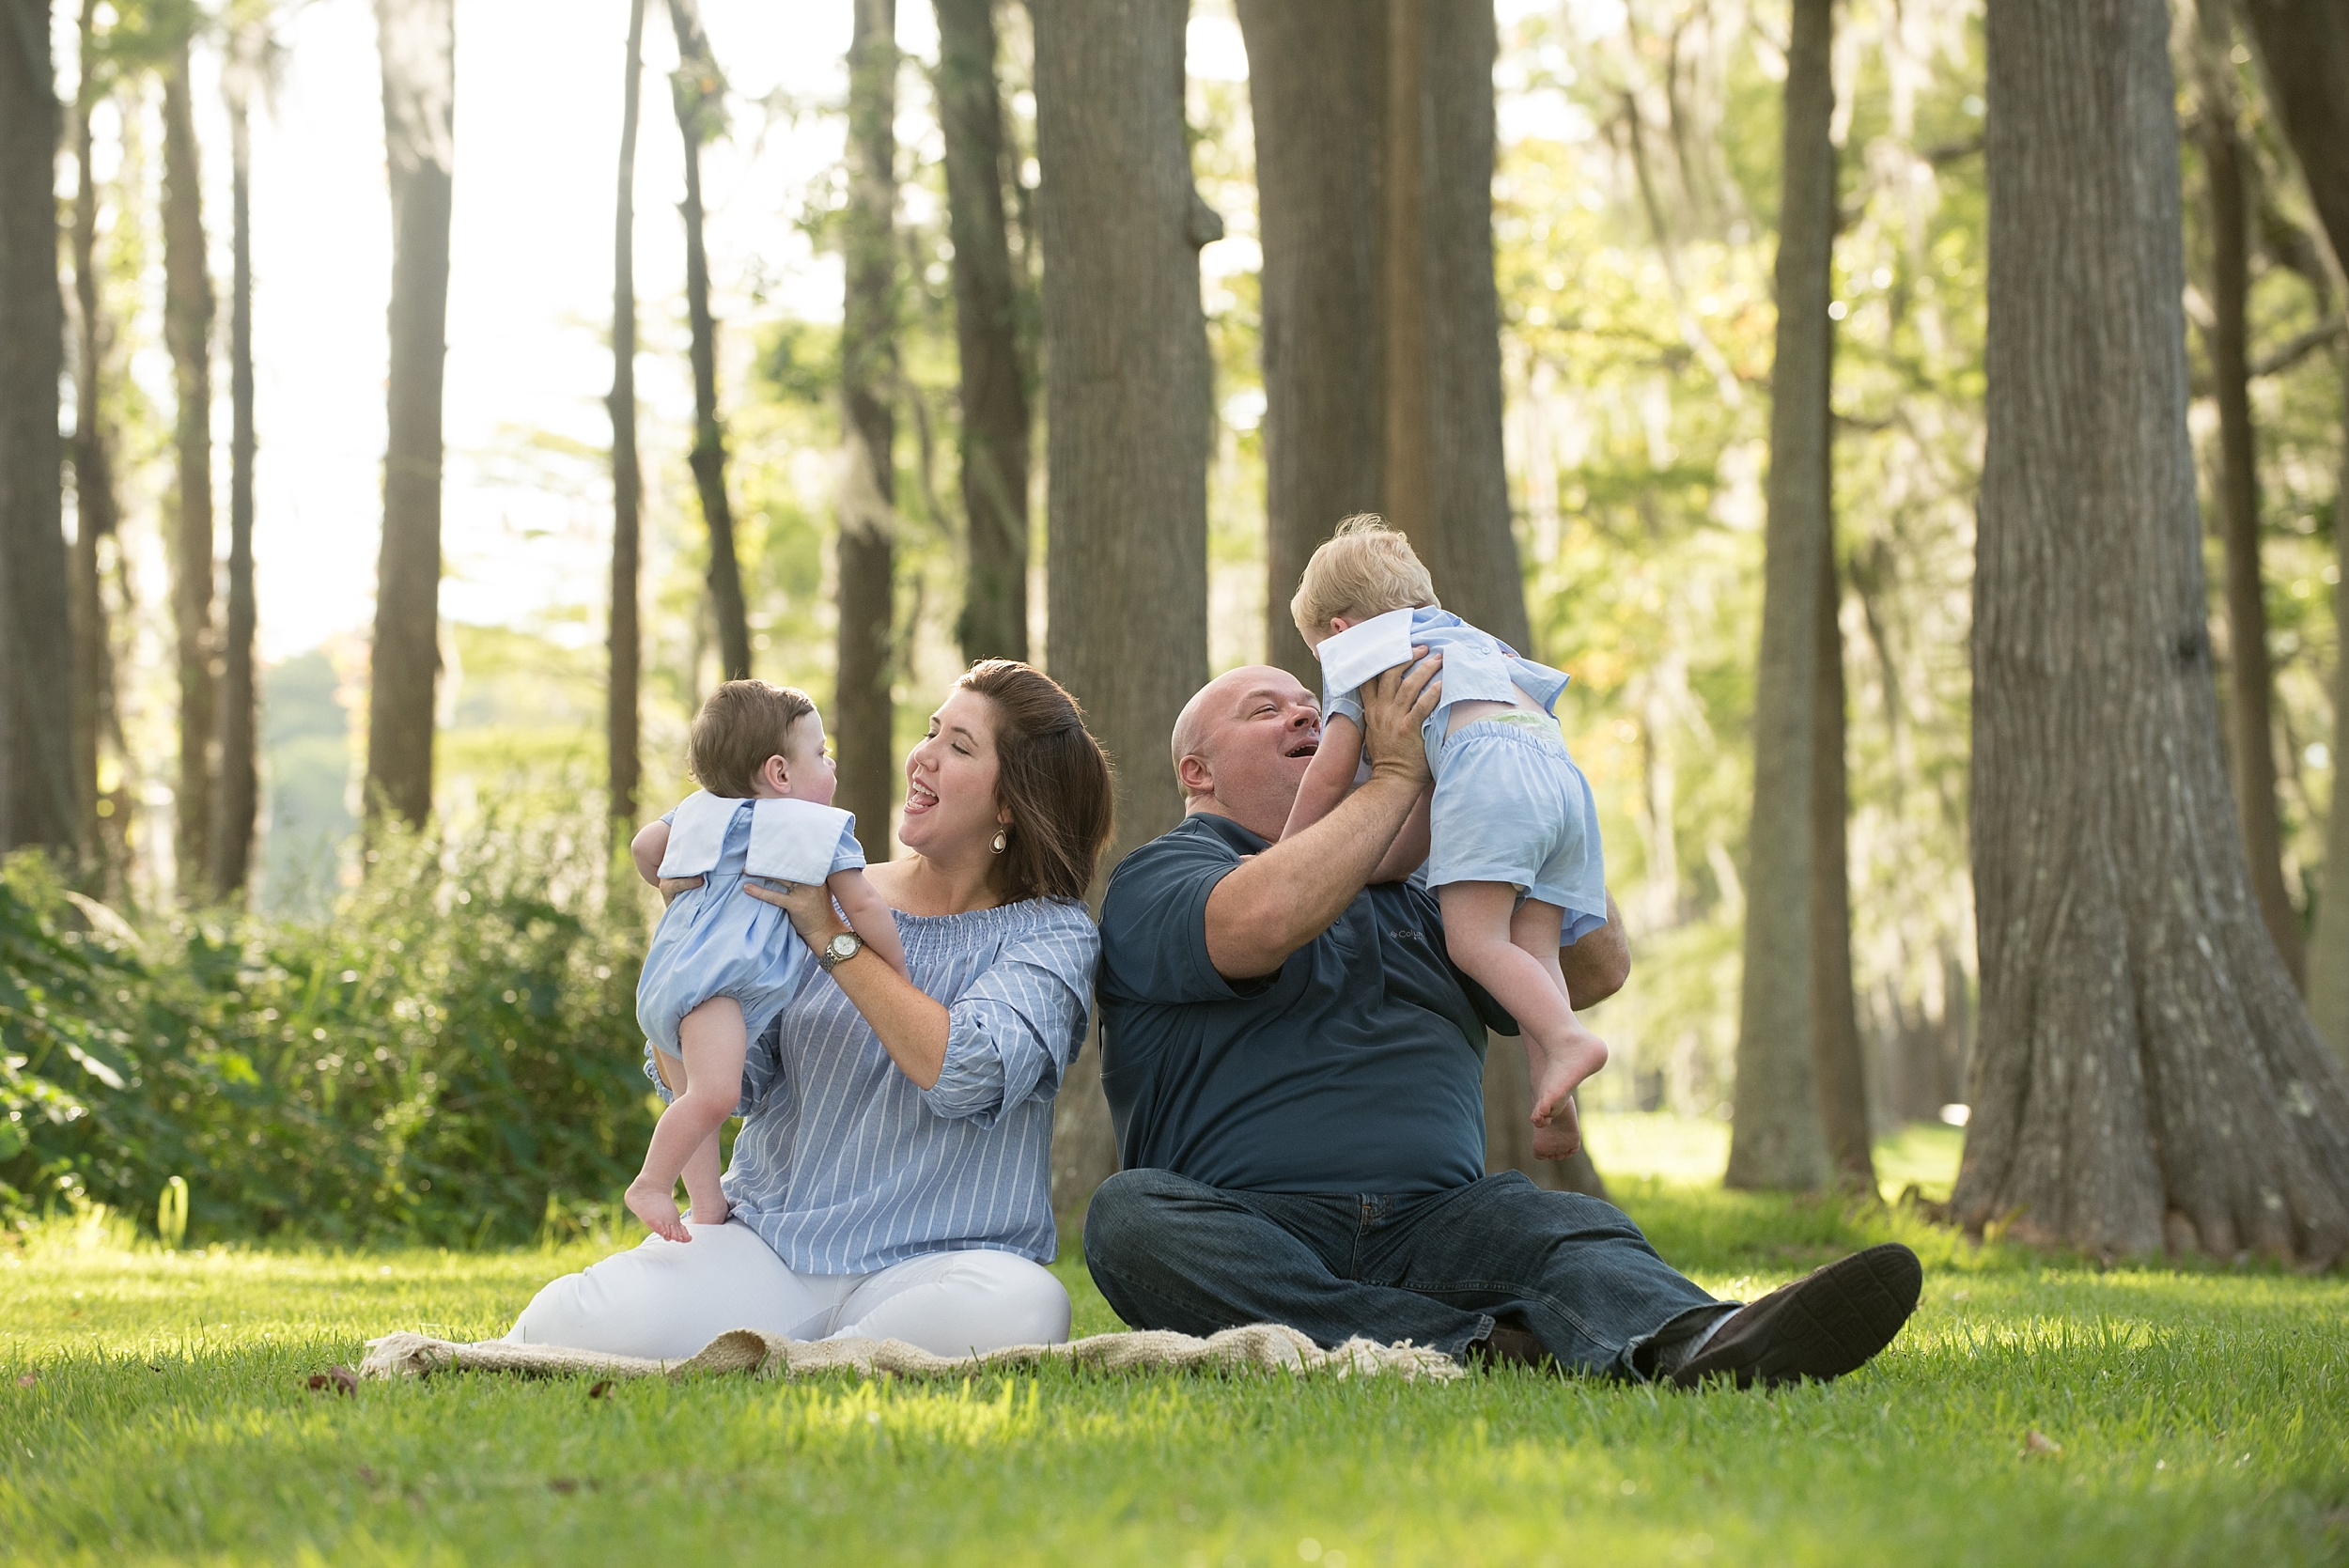 mom and dad playfully hold their sons up in the air while sitting under majestic cypress trees